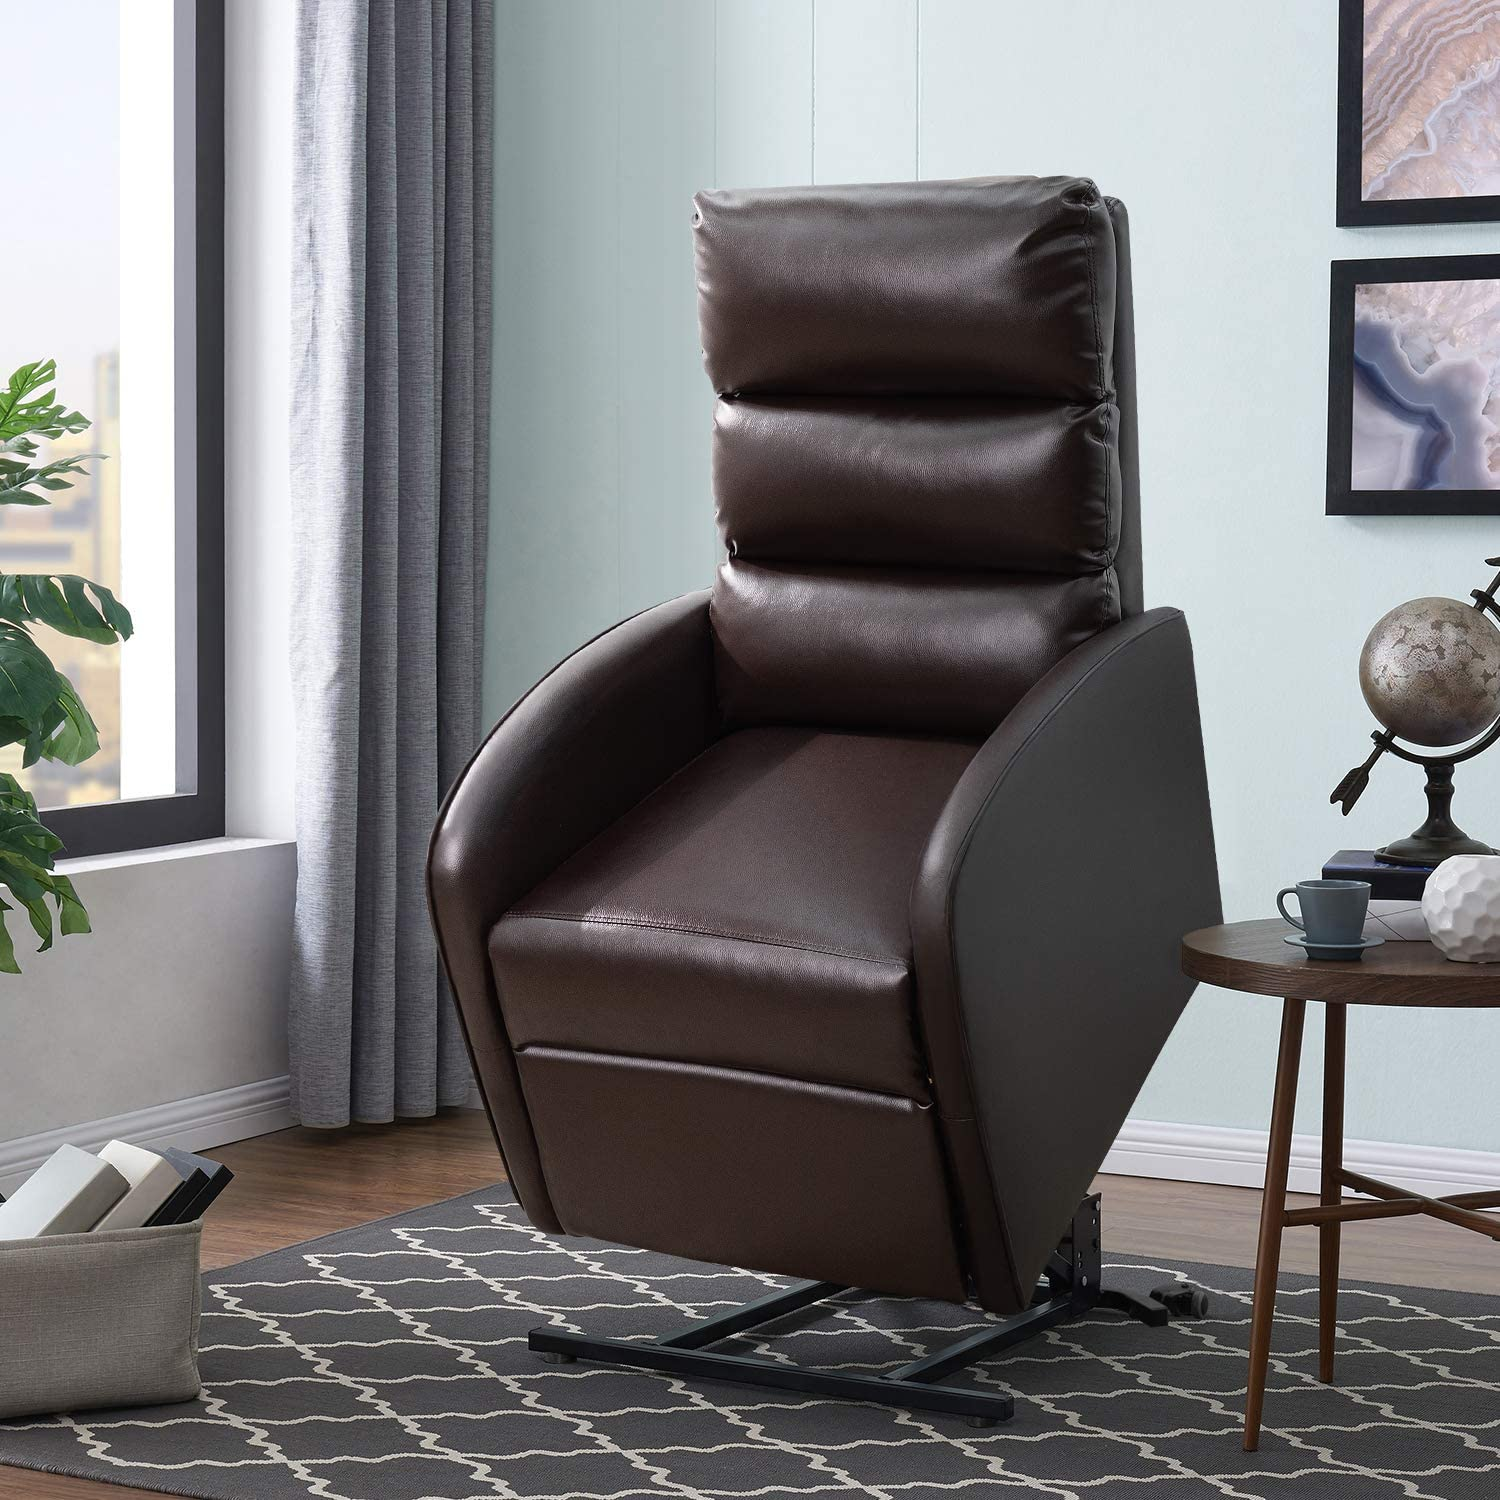 Homall Electric recliner for small spaces